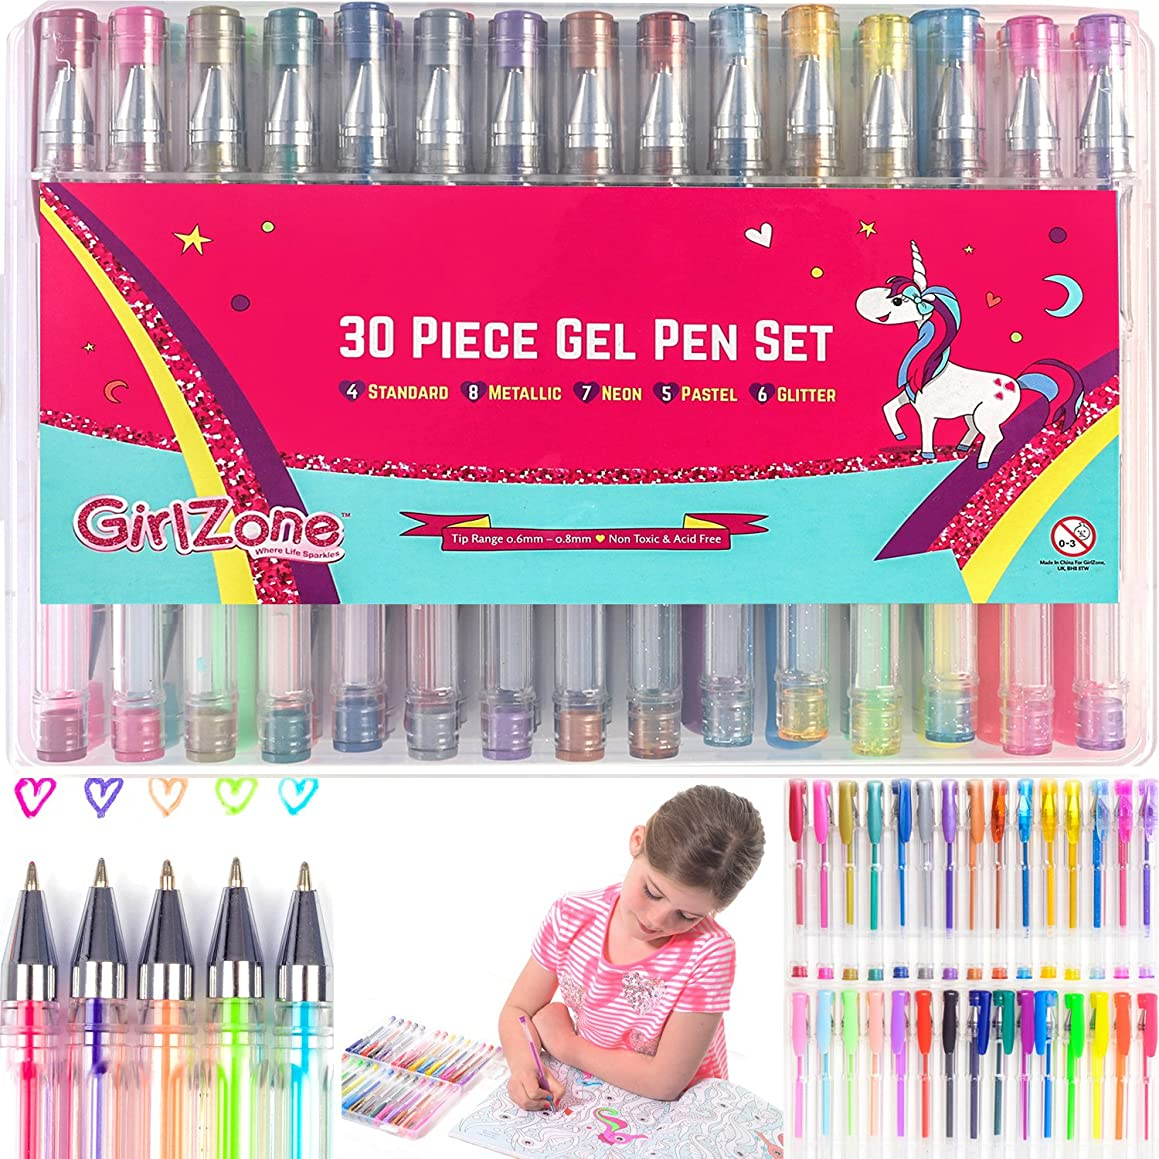 Gel Pens Set for Girls - Ideal Arts & Crafts Kit - Great Birthday Present Gift for Girls of All Ages